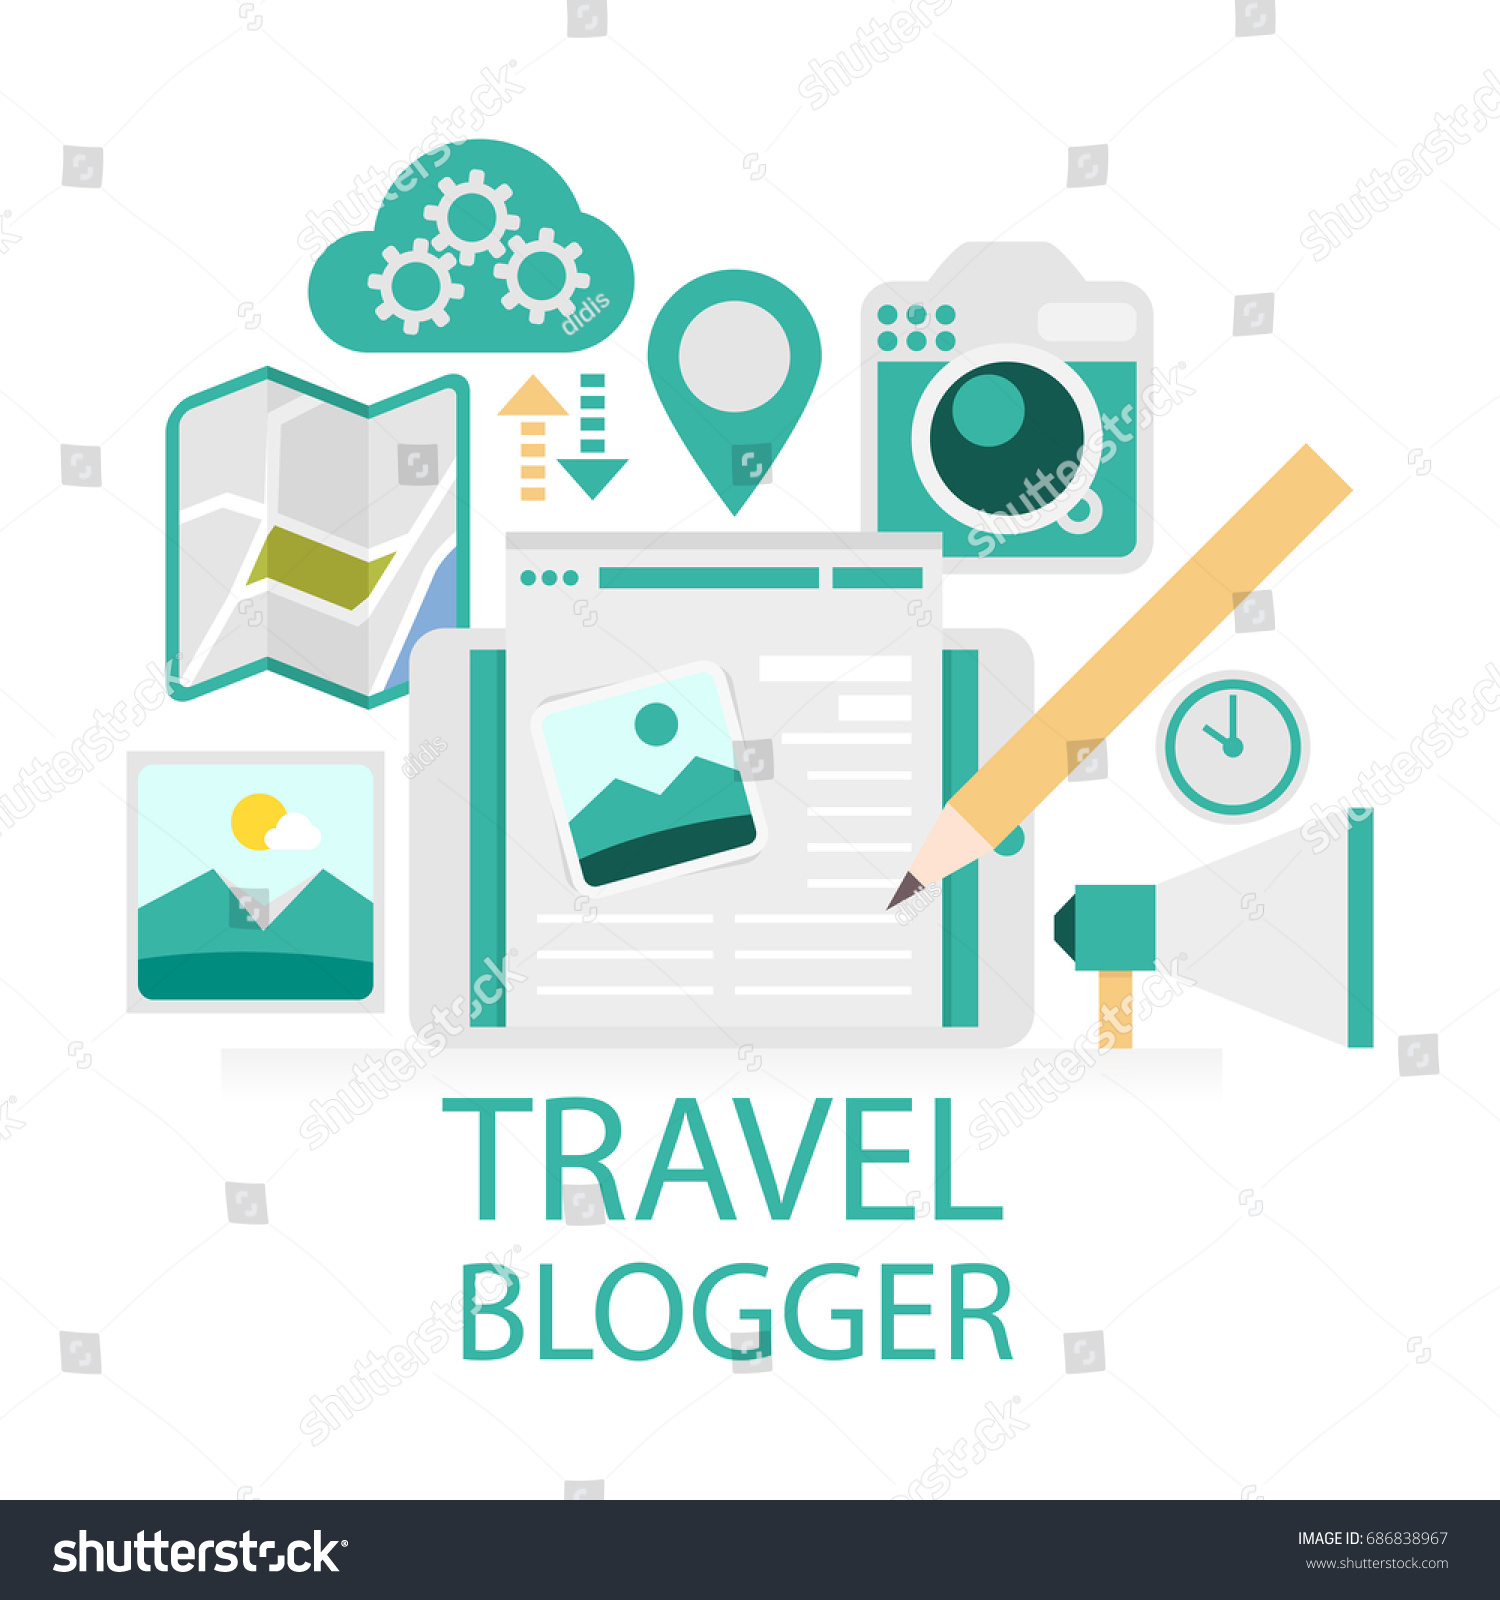 Travel Blog With Map Blog Concept Illustration Travel Blogger Concept Stock